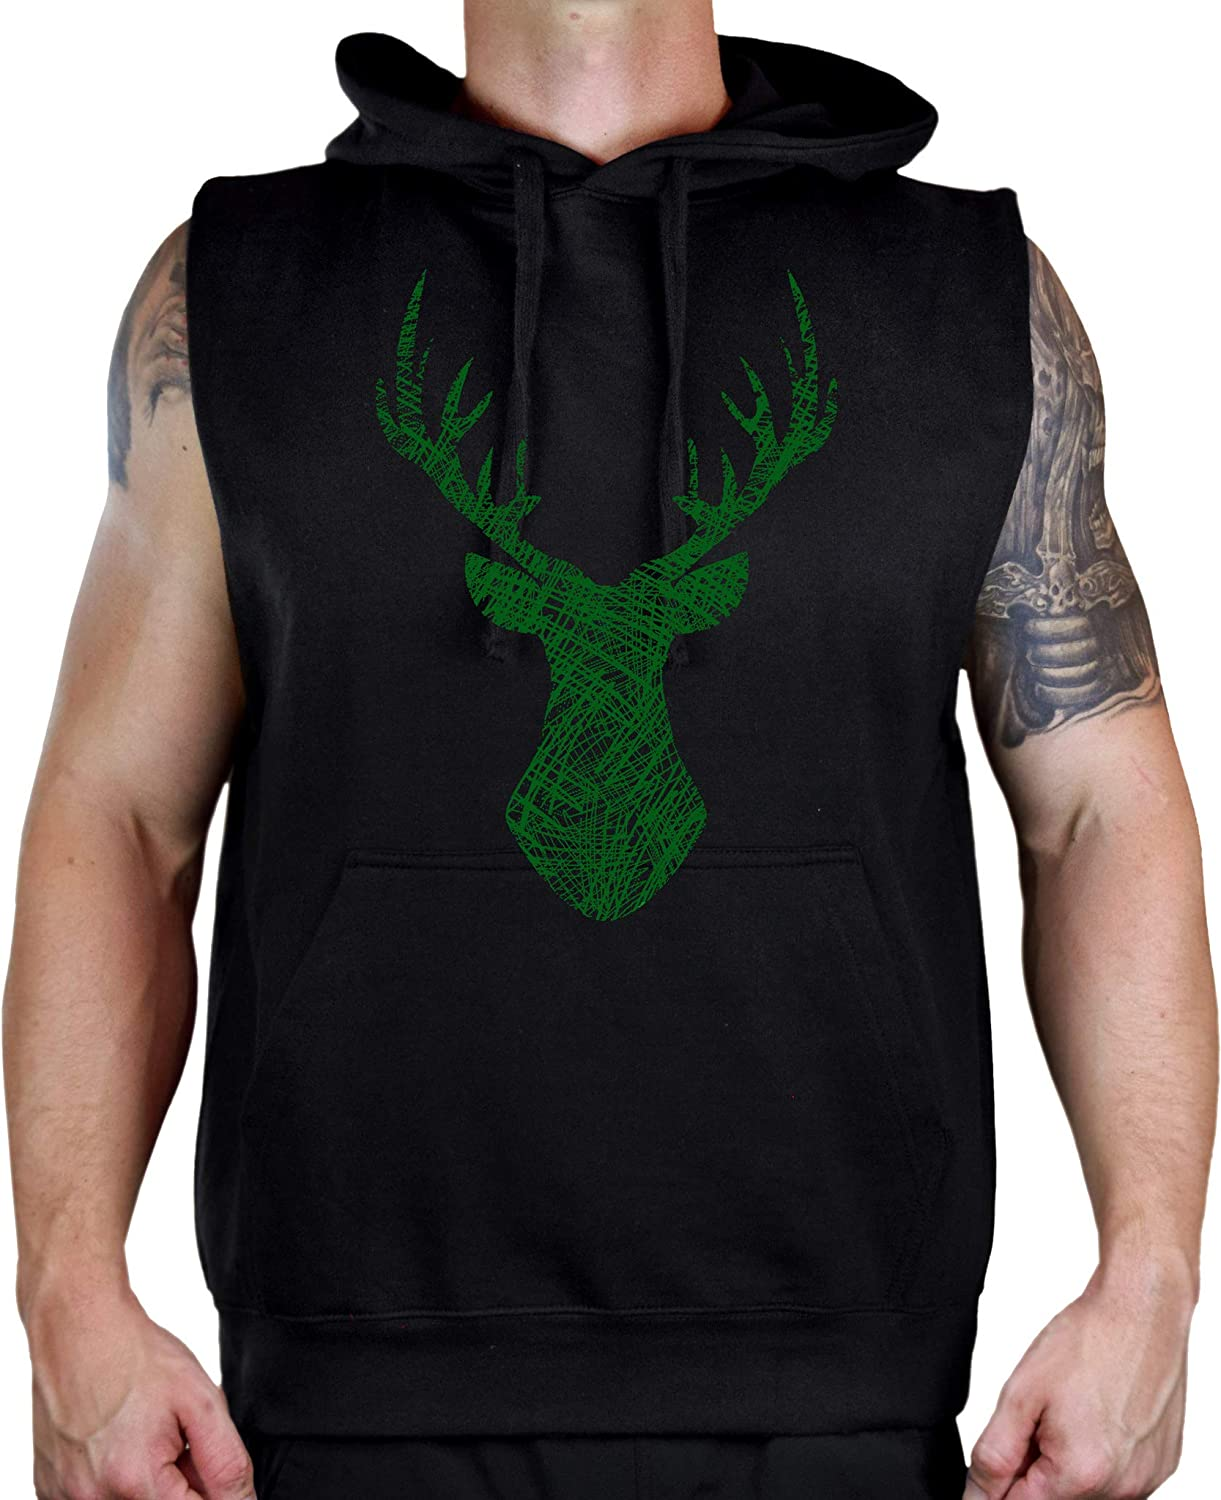 Mens Sketch Deer Head Black Sleeveless Vest Hoodie